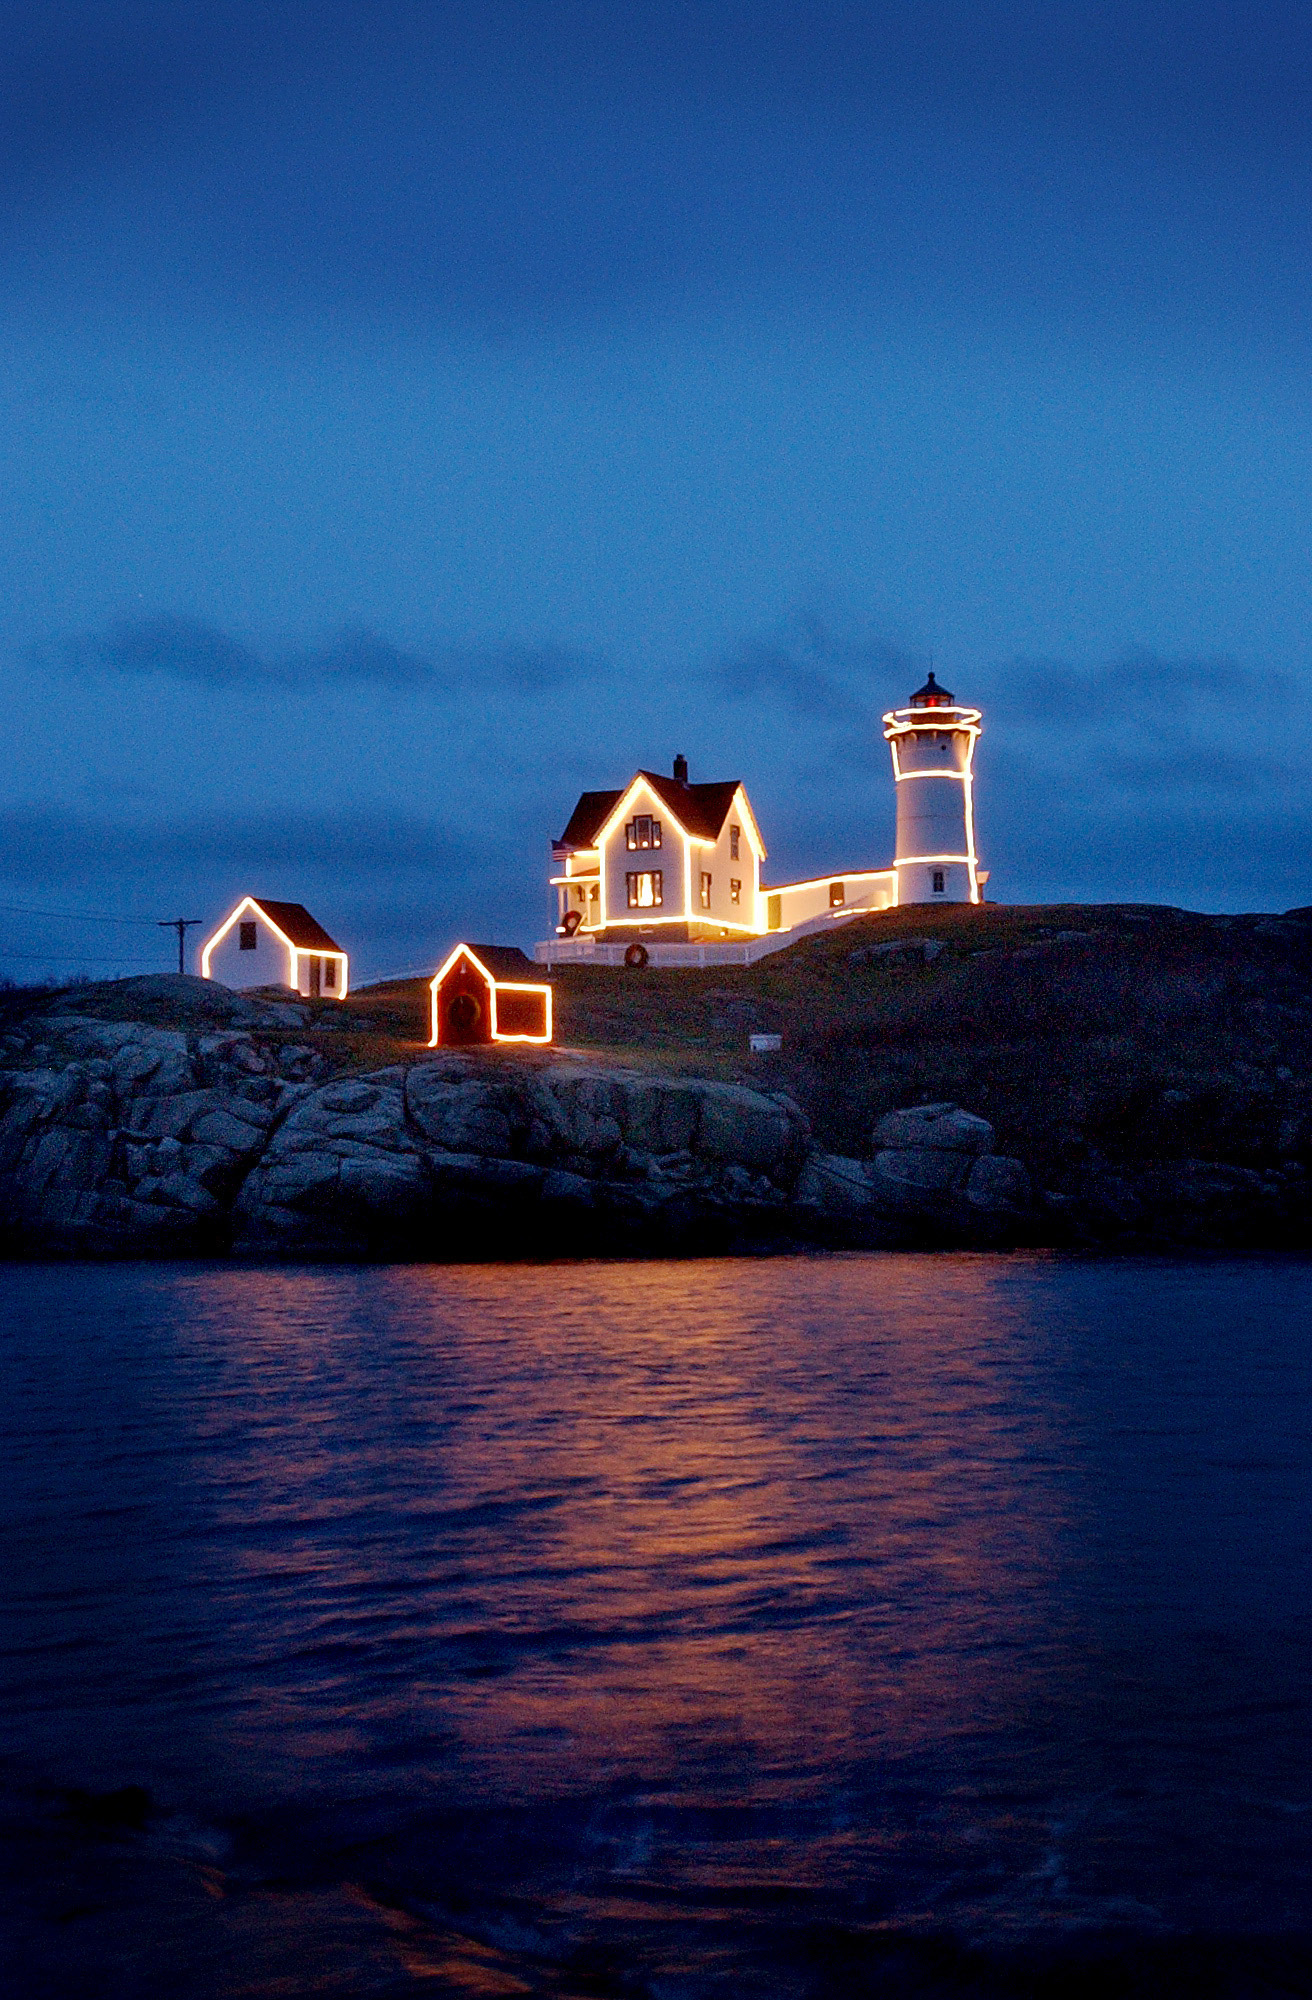 Lighting of the Nubble Lighthouse 2019 at Cape Neddick, Maine